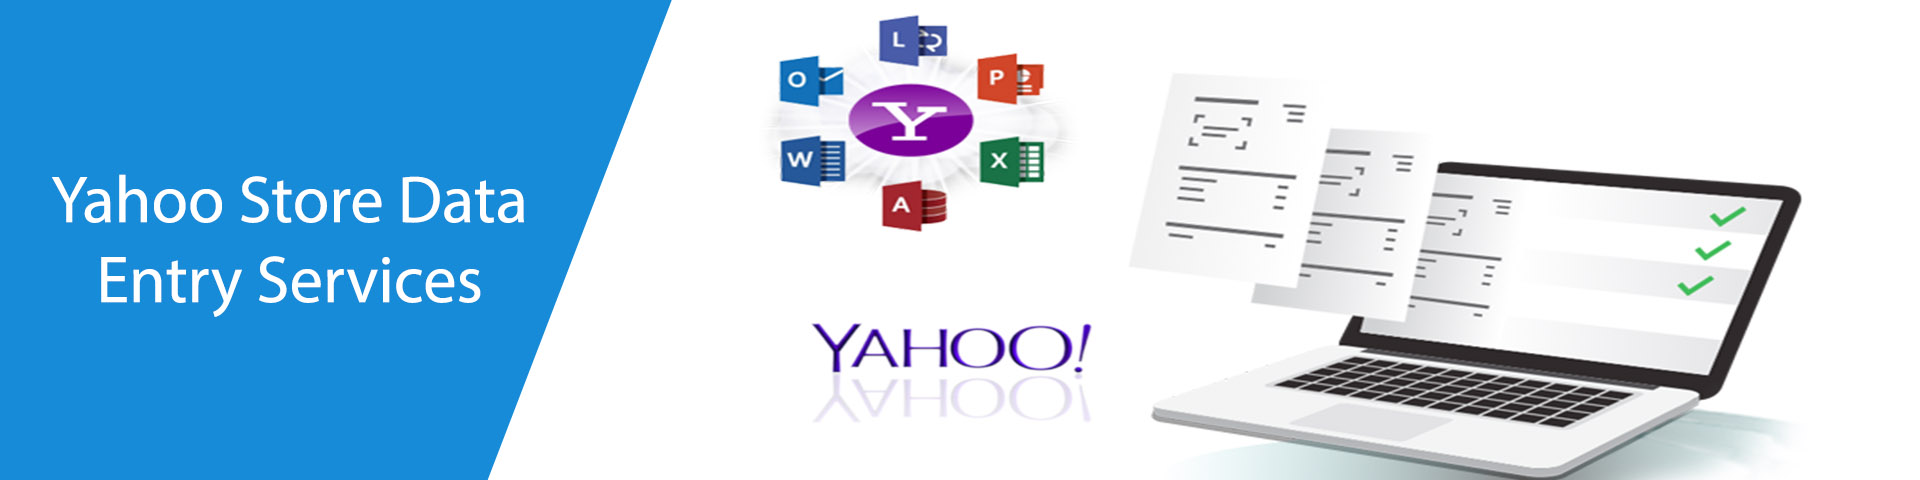 Yahoo Store Data Entry Services